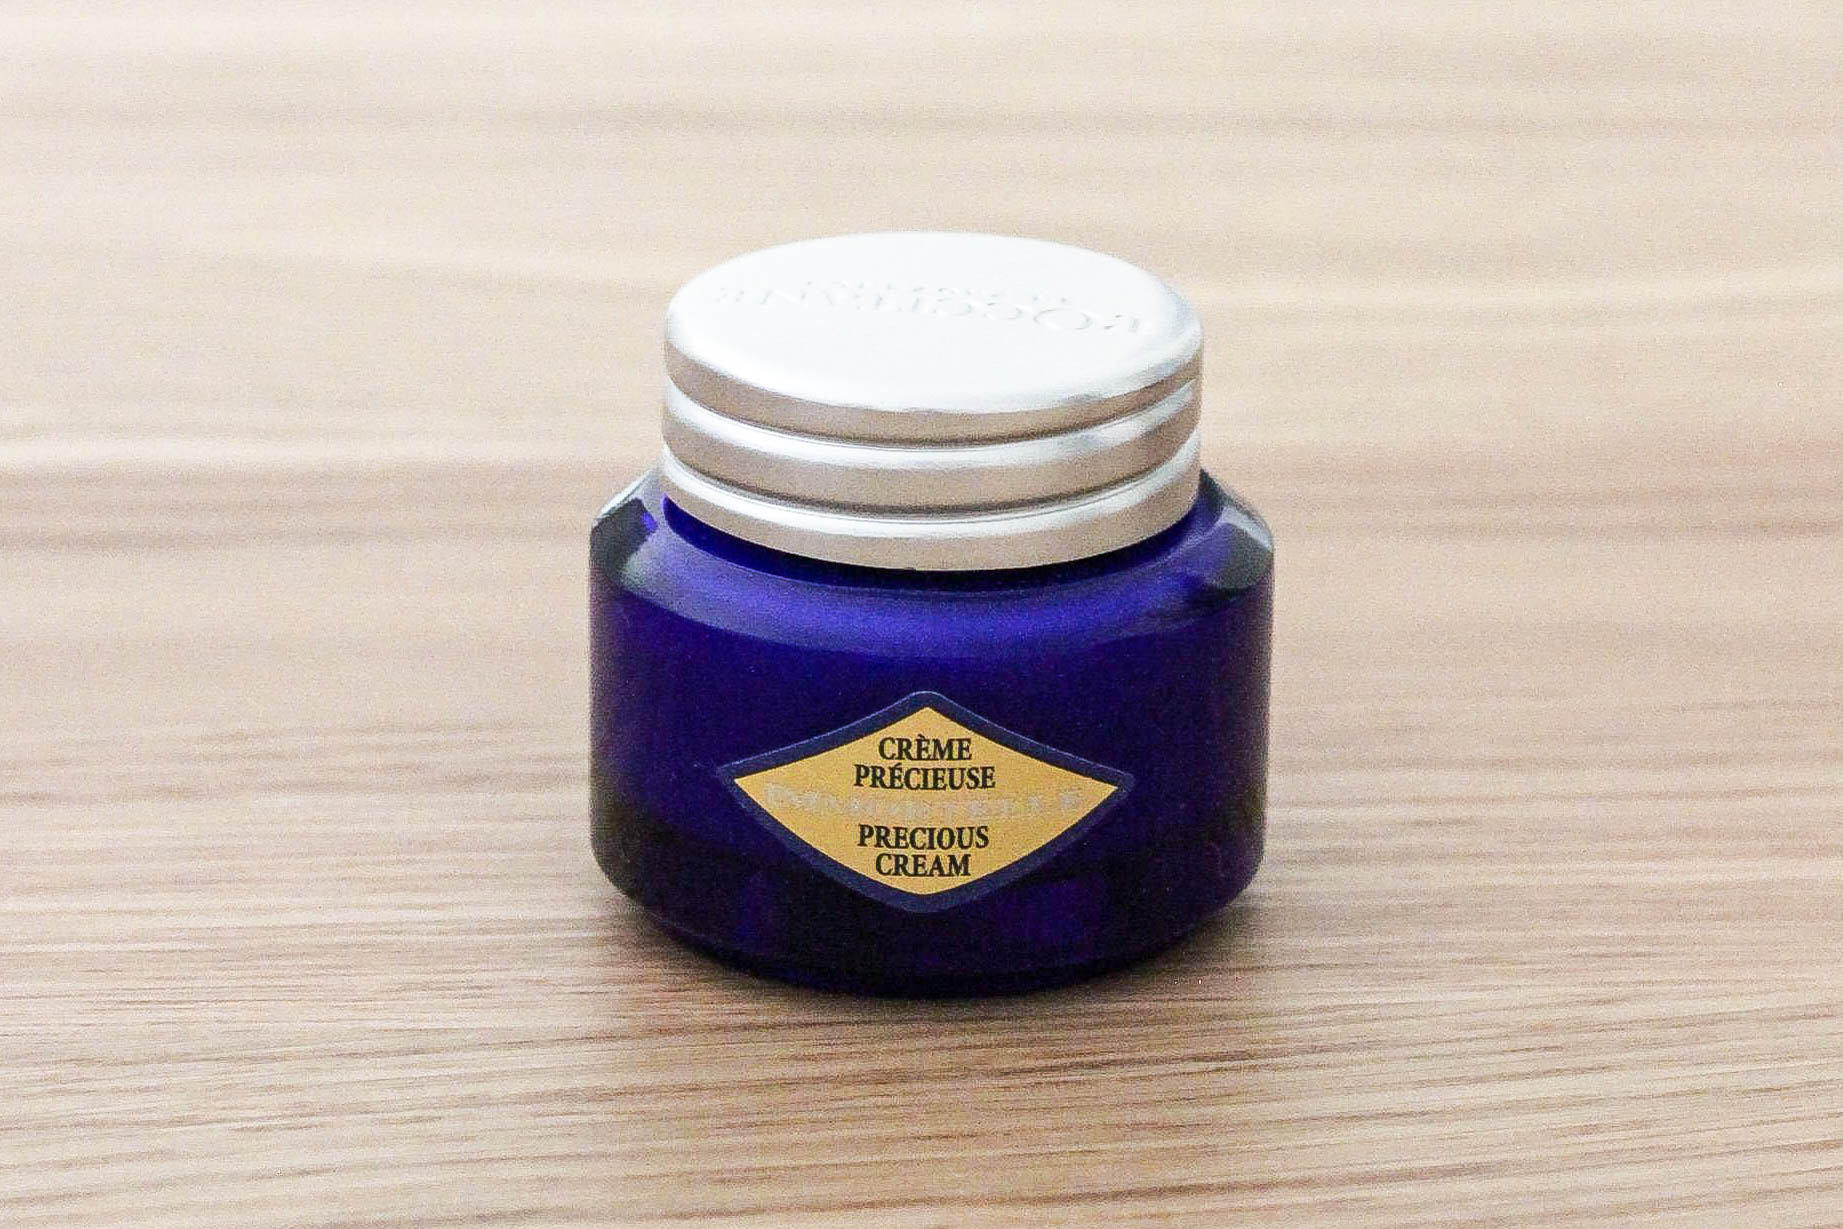 A sample of the famous L'Occitane Precious Cream. Very rich, perfect for the coming fall season.